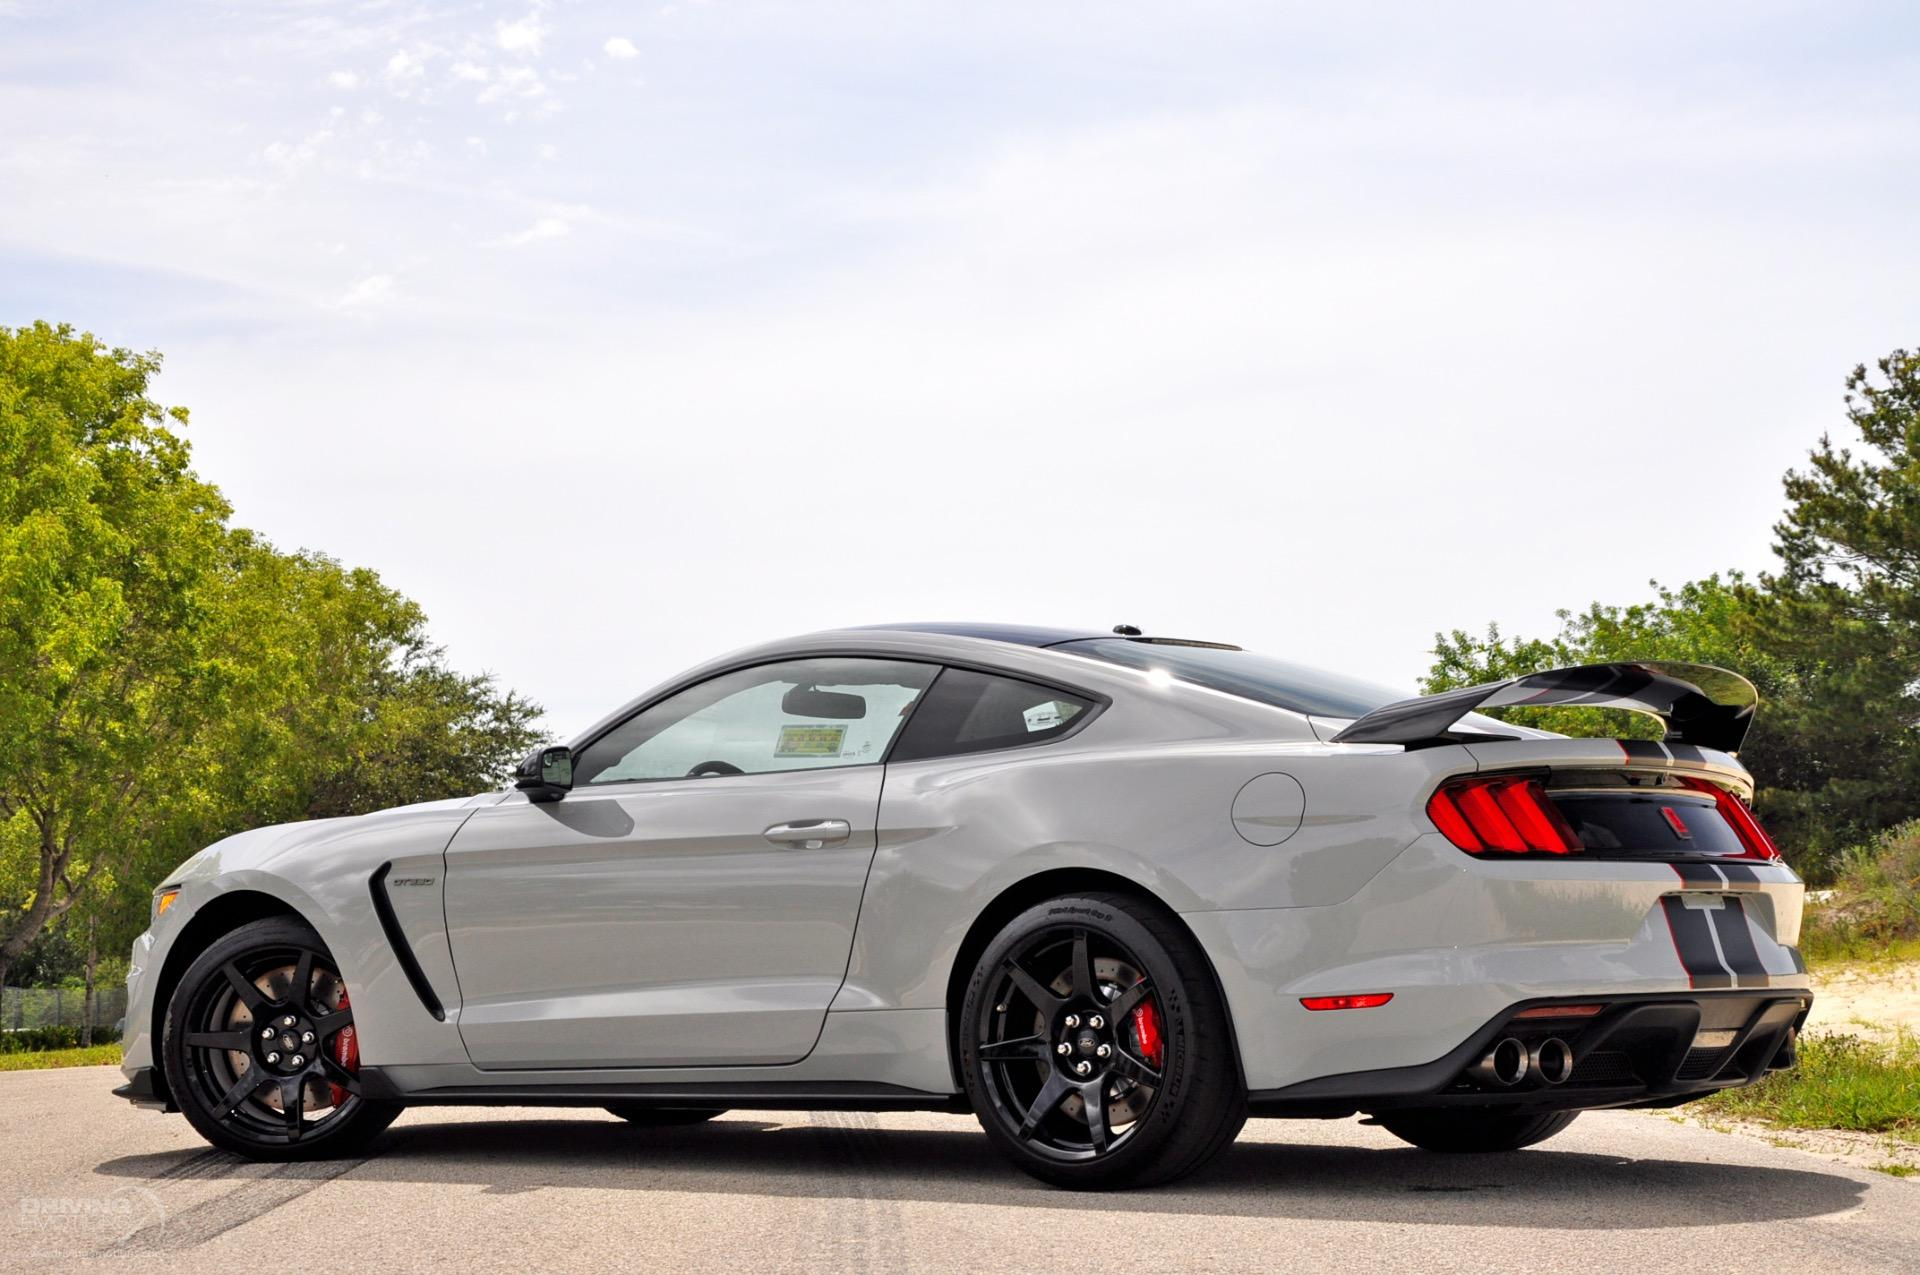 gt350r shelby mustang ford fl lake park